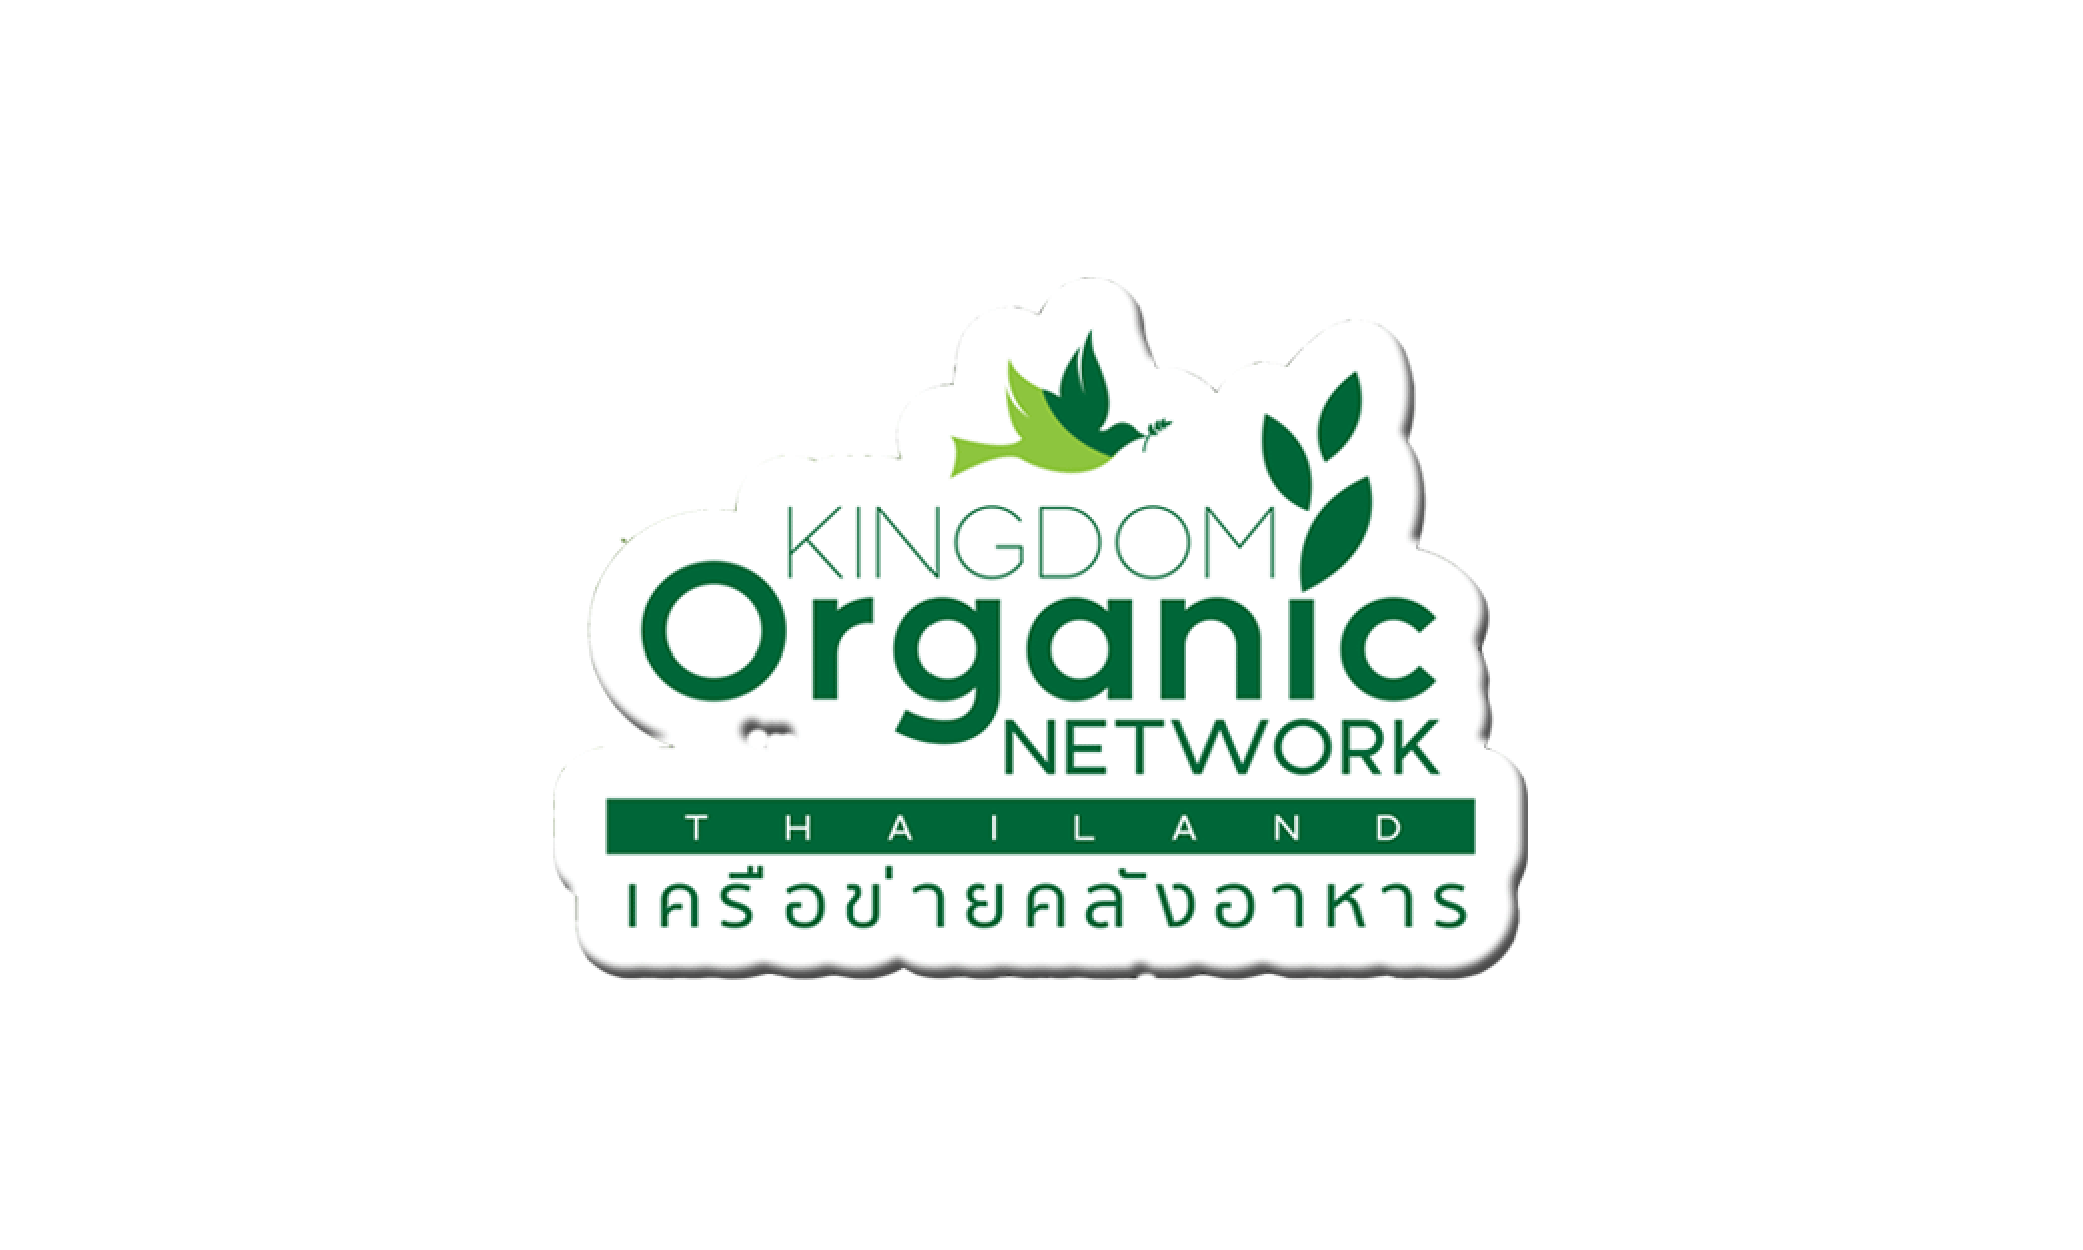 Kingdom Organic Network